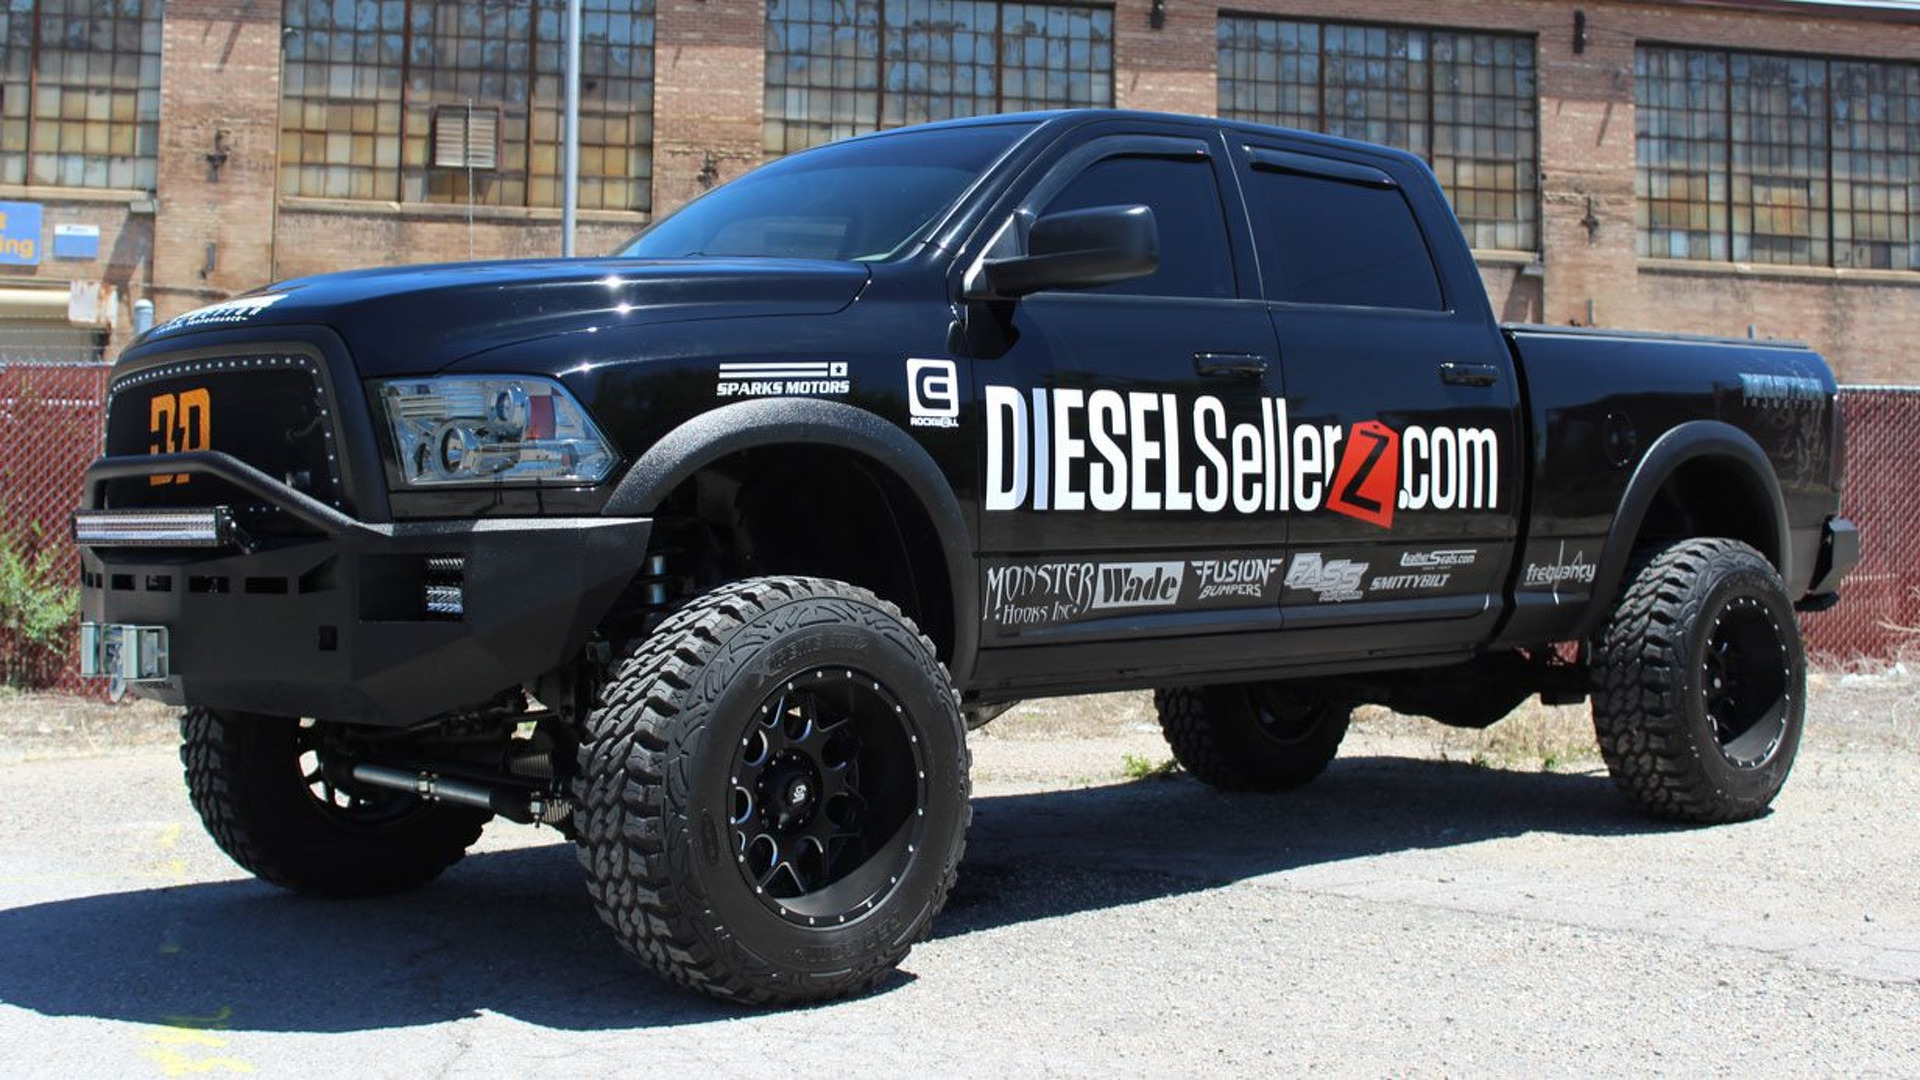 Diesel Brothers being sued over health effects of modified trucks